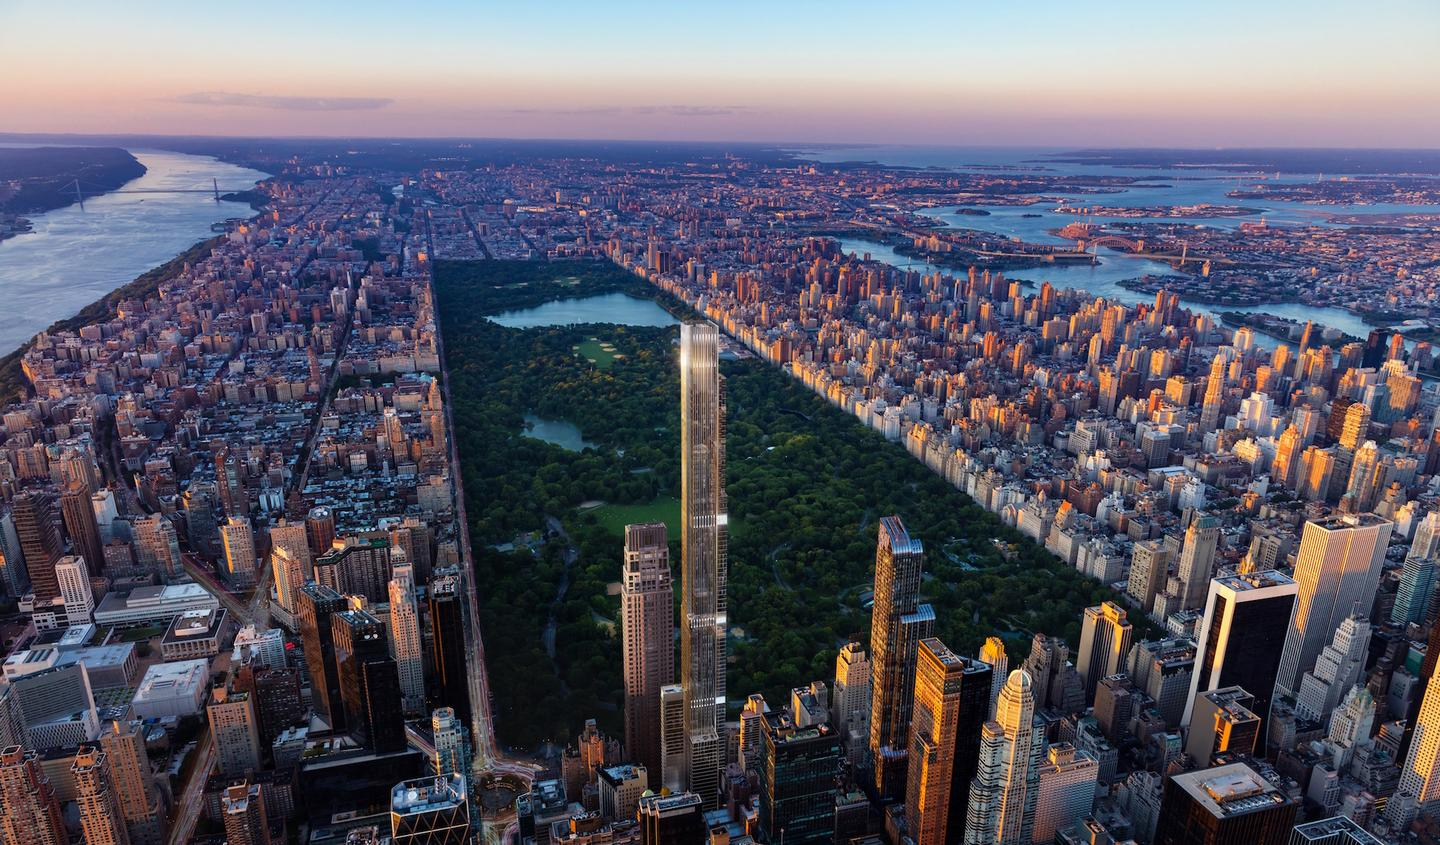 Central Park Tower overlooks New York City's Central Park and rises to a height of 472 m (1,550 ft)